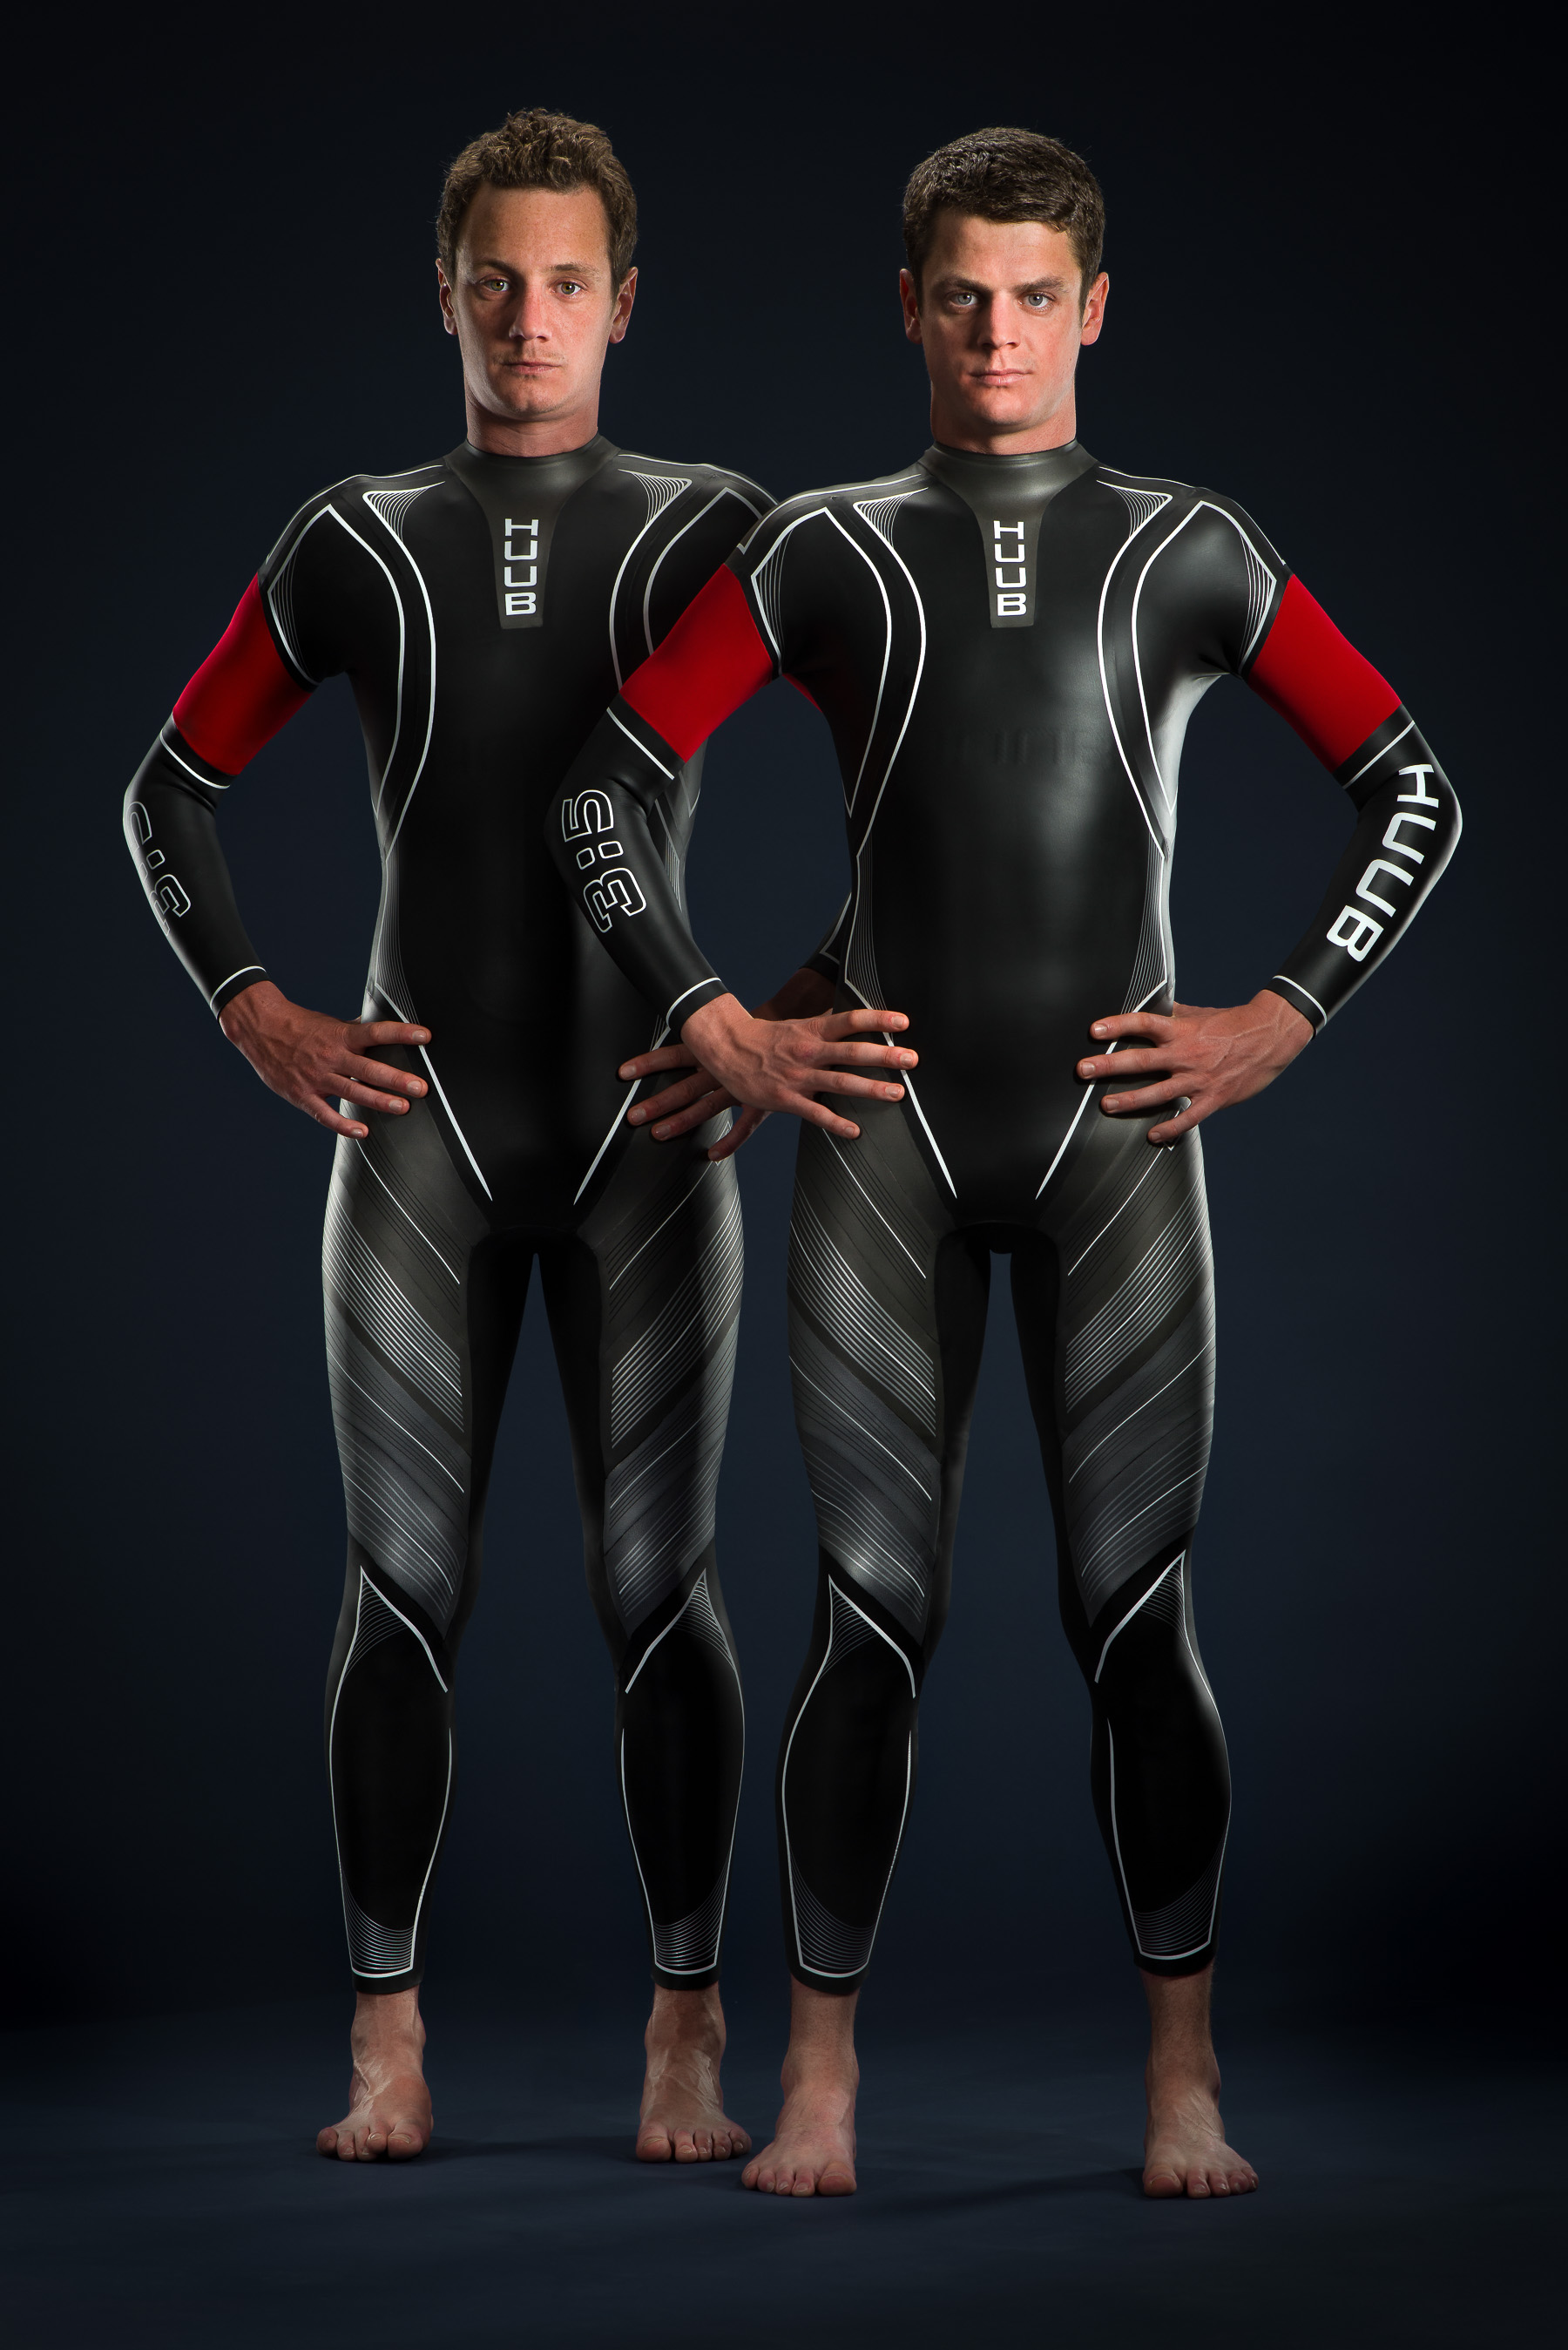 The Brownlee brothers, Alistair and Jonathan photographed by Cactus Images